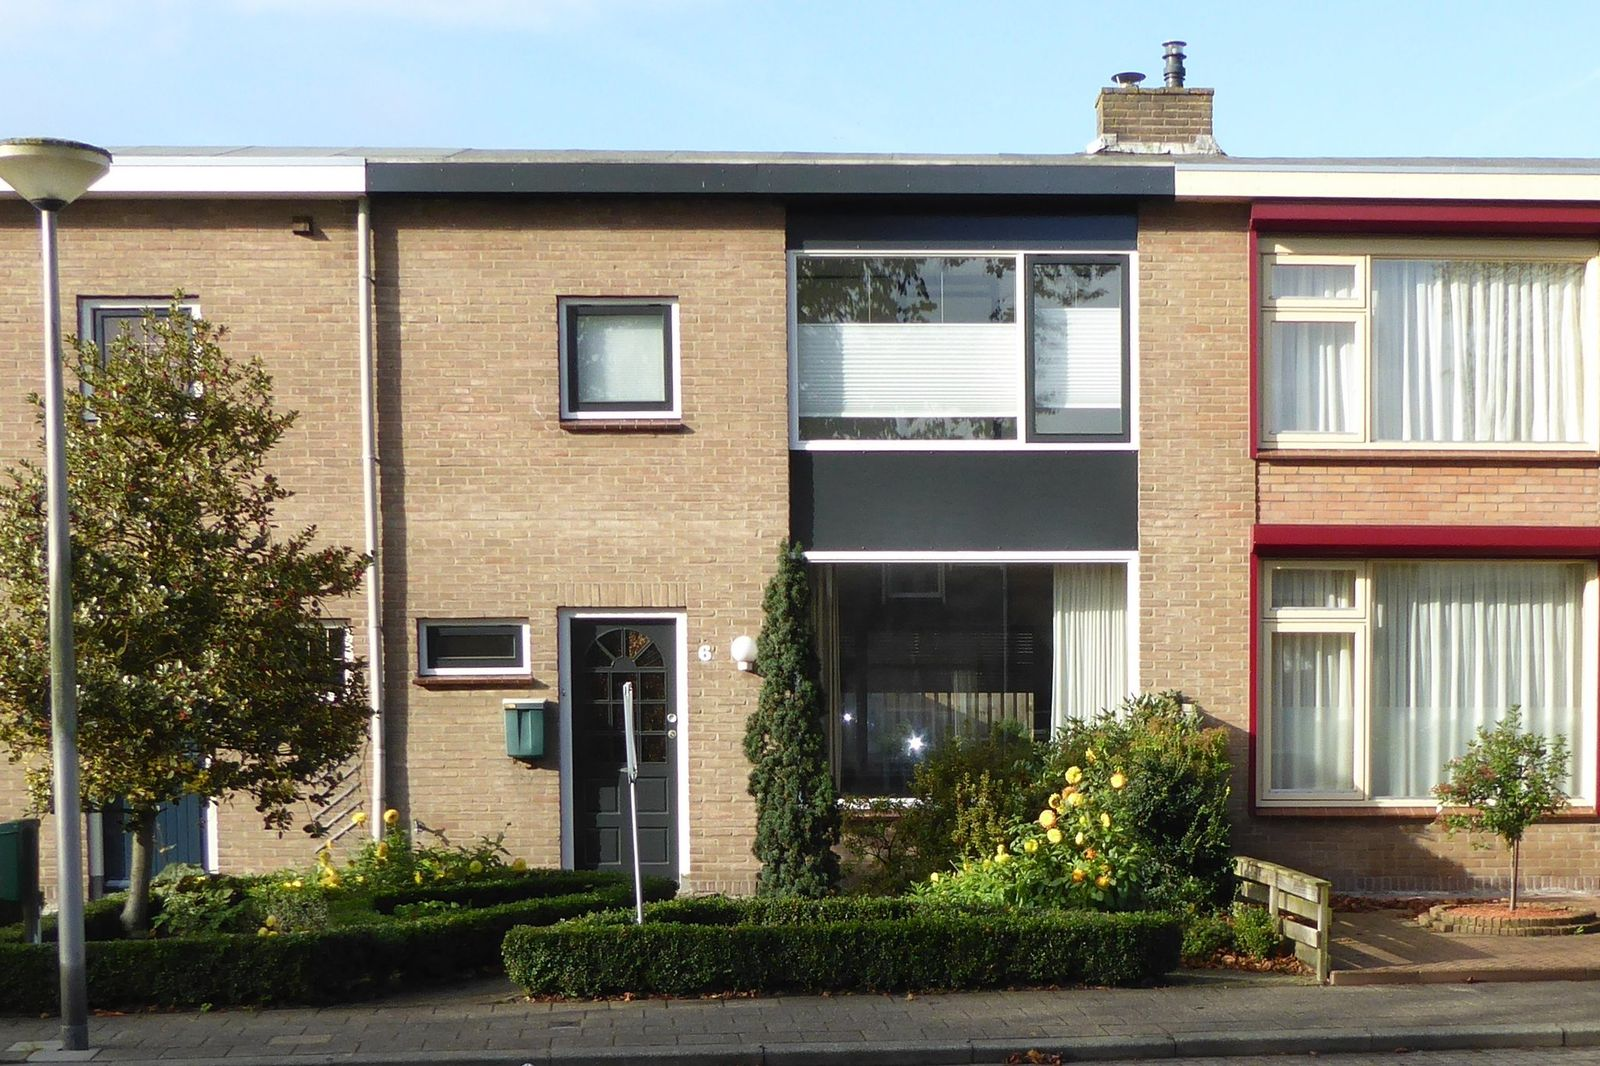 Irisstraat 6, Steenbergen